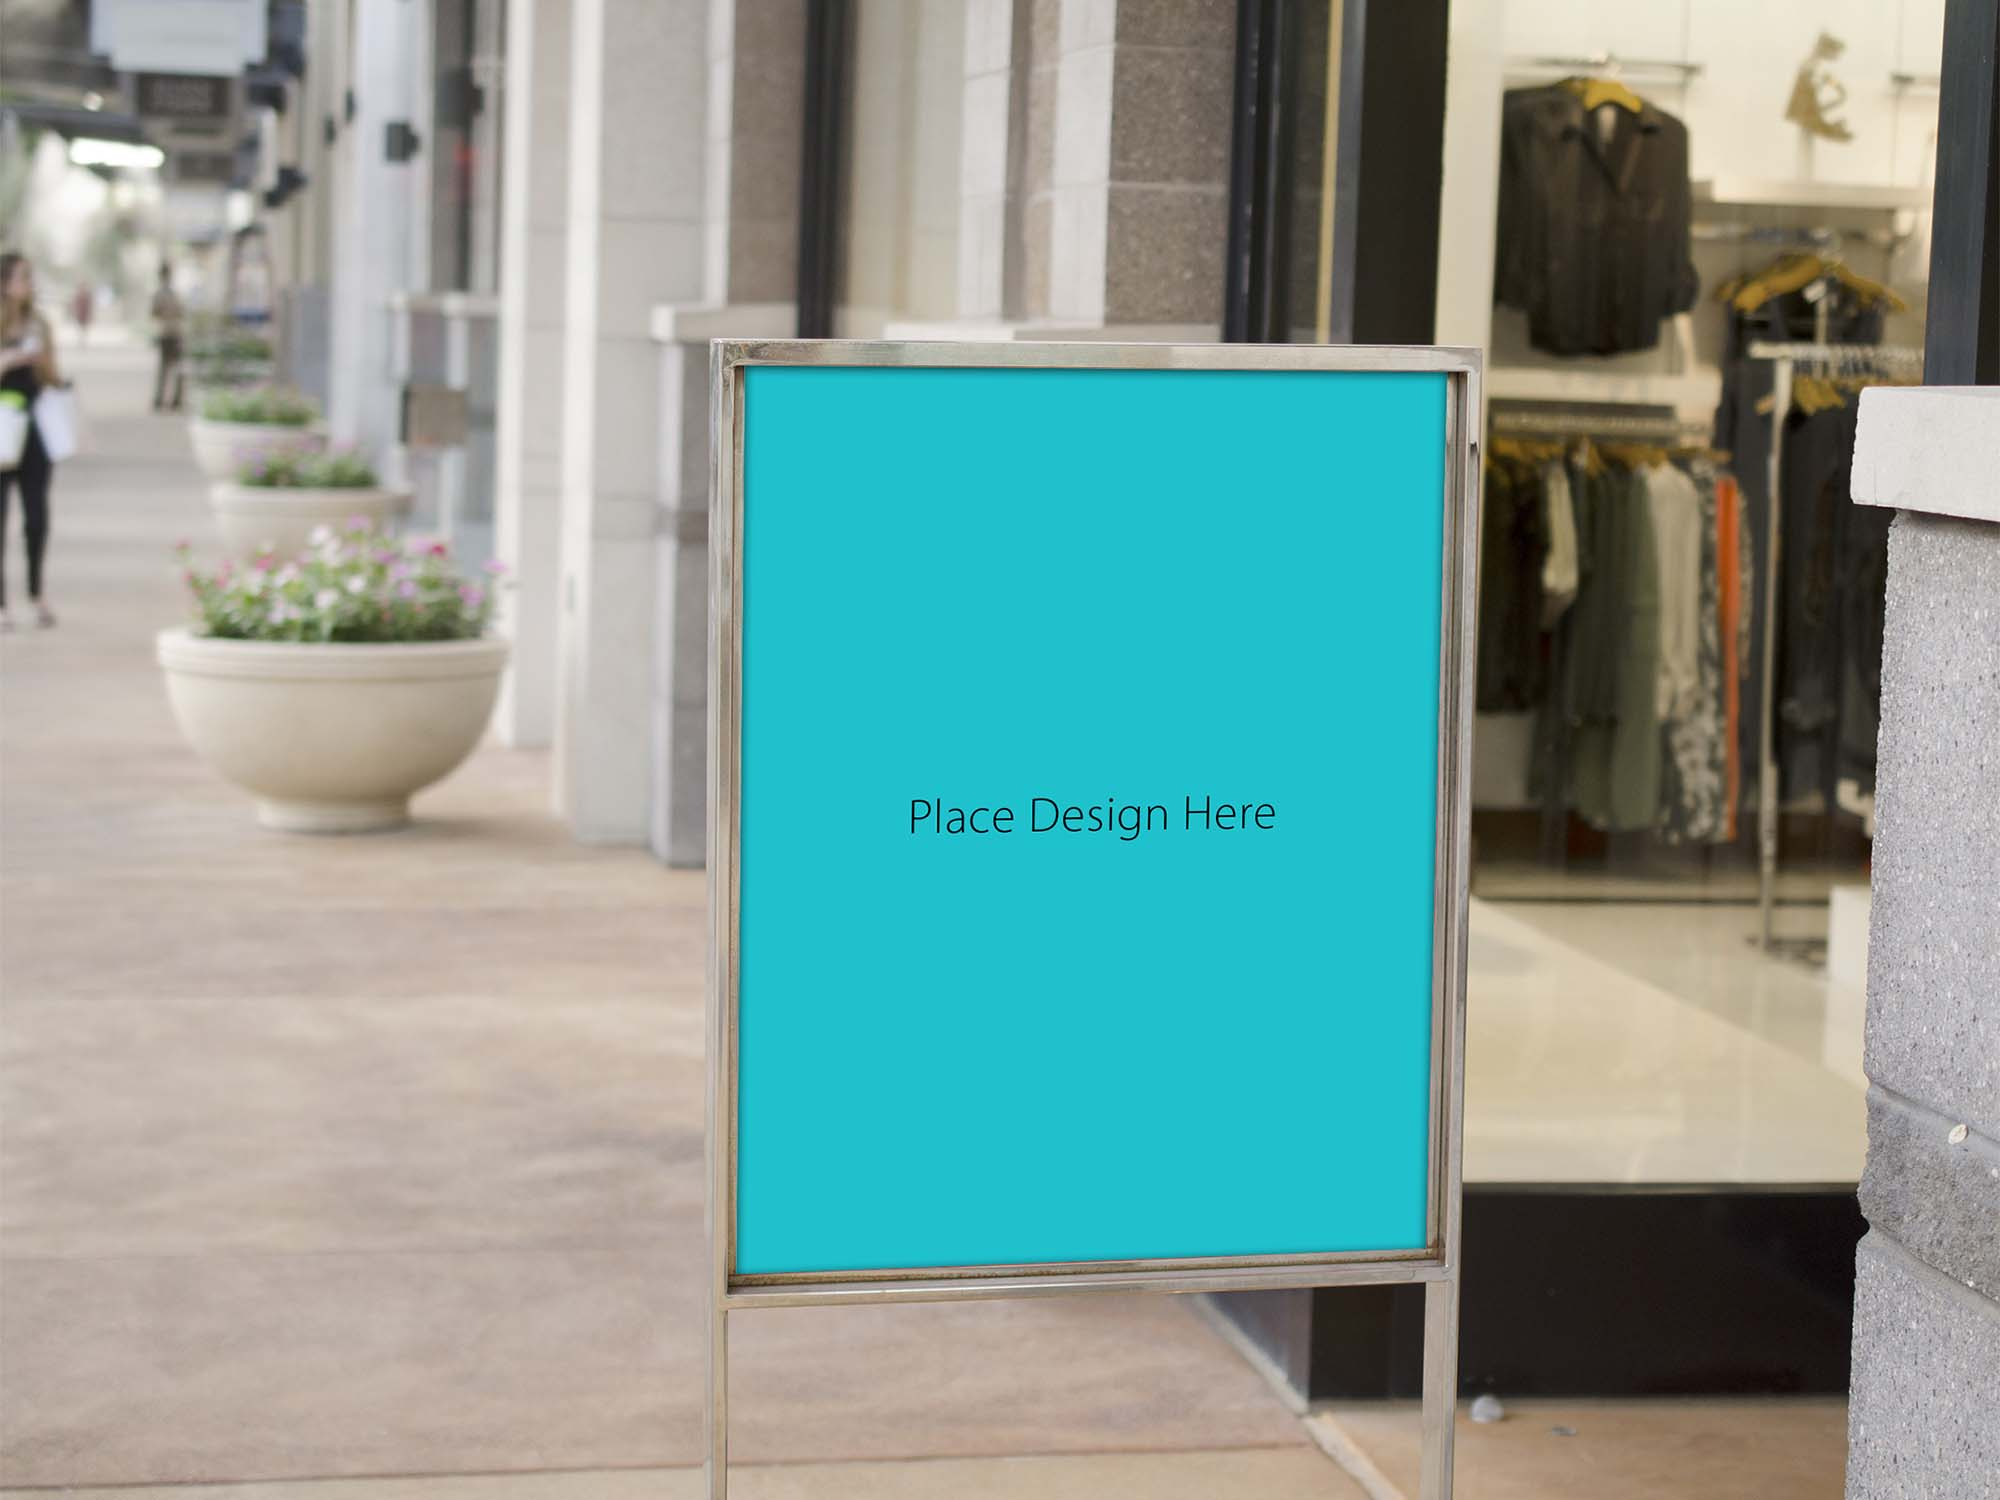 Retail Store Sale Sign Mockup 2